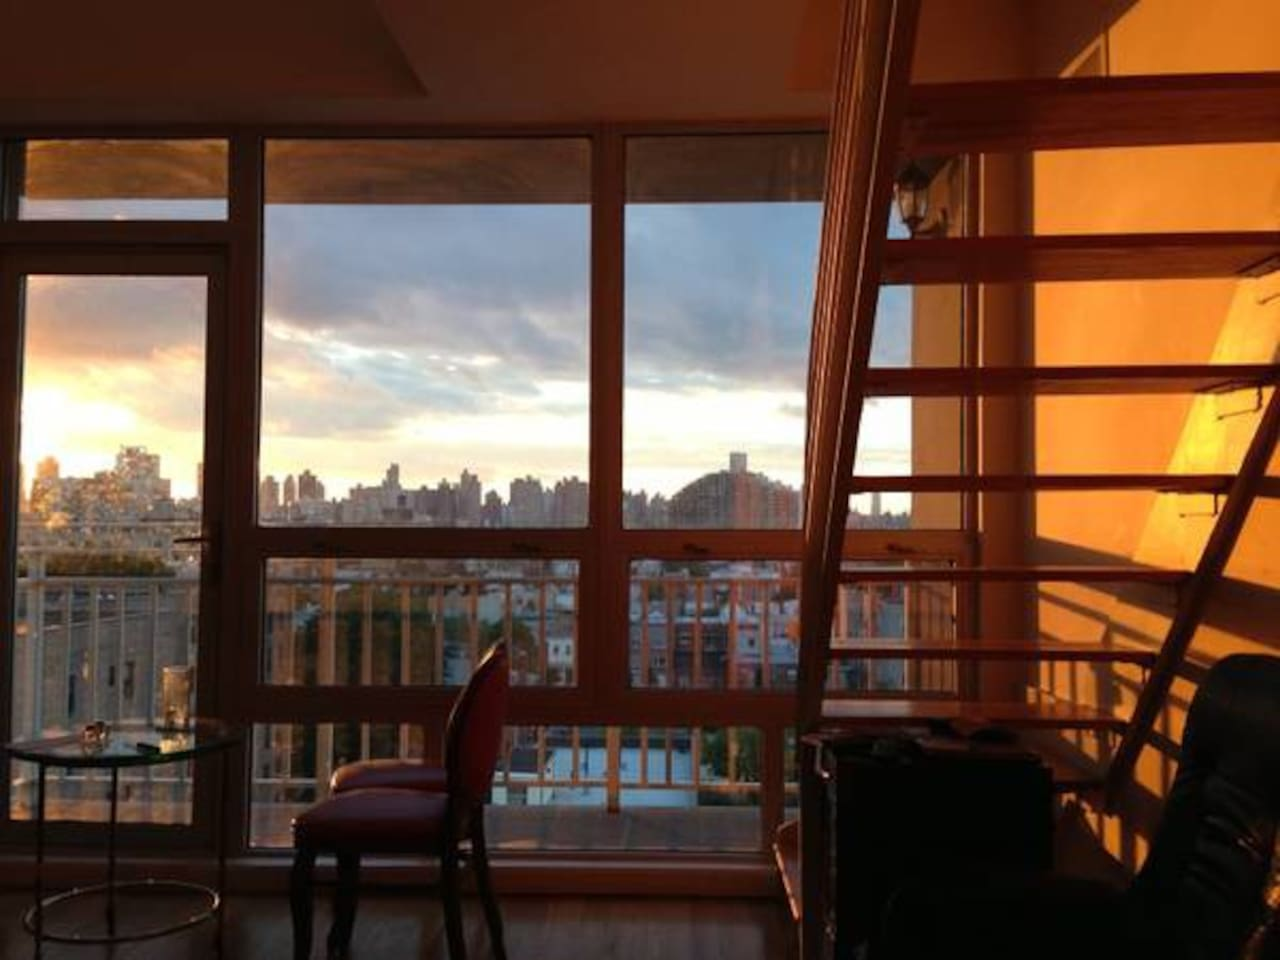 Living Room with View of Manhattan